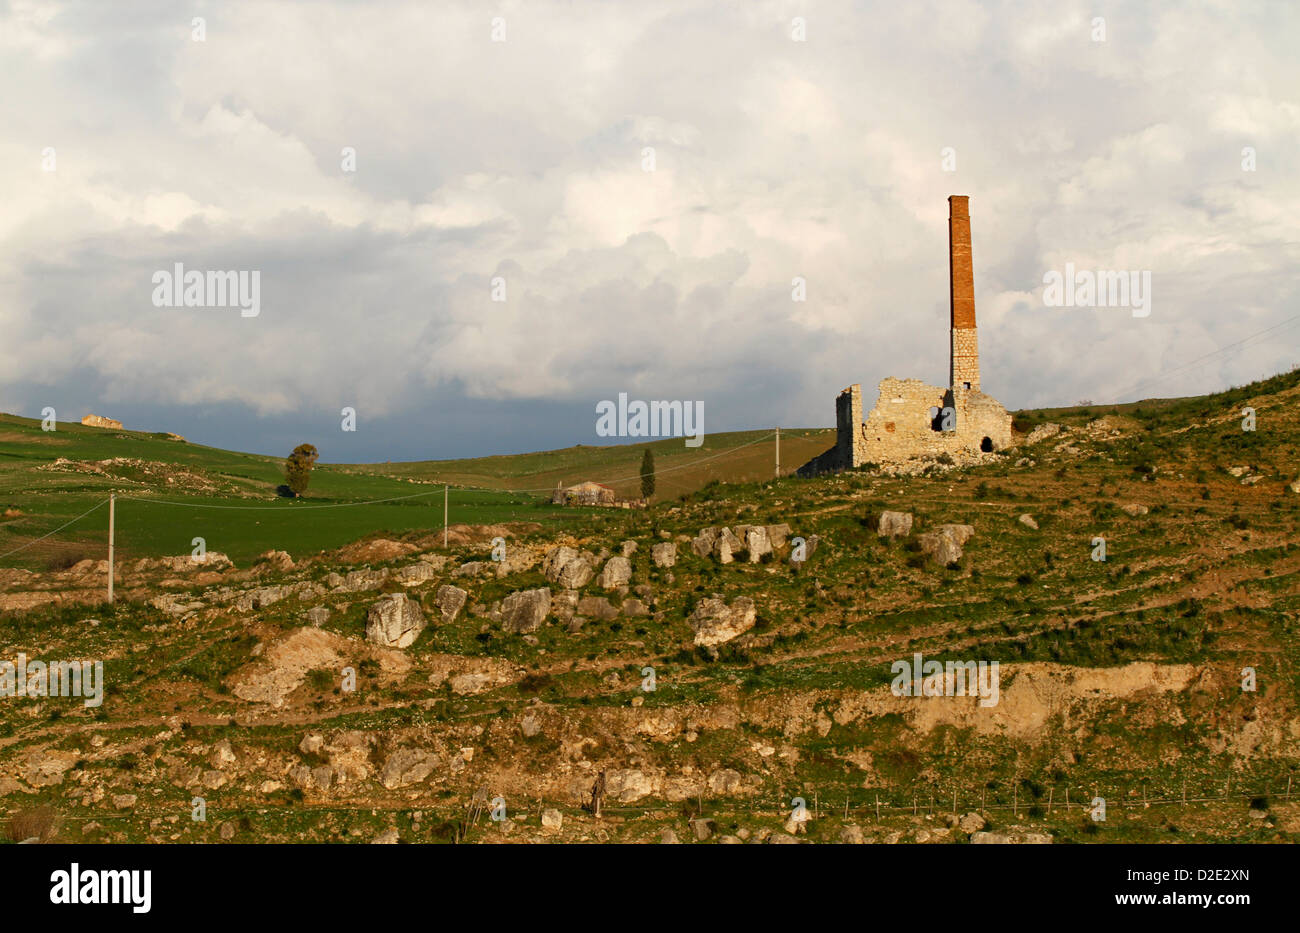 Abandoned buildings forming part of a former sulfur mine, Enna Province, Sicily, Italy - Stock Image